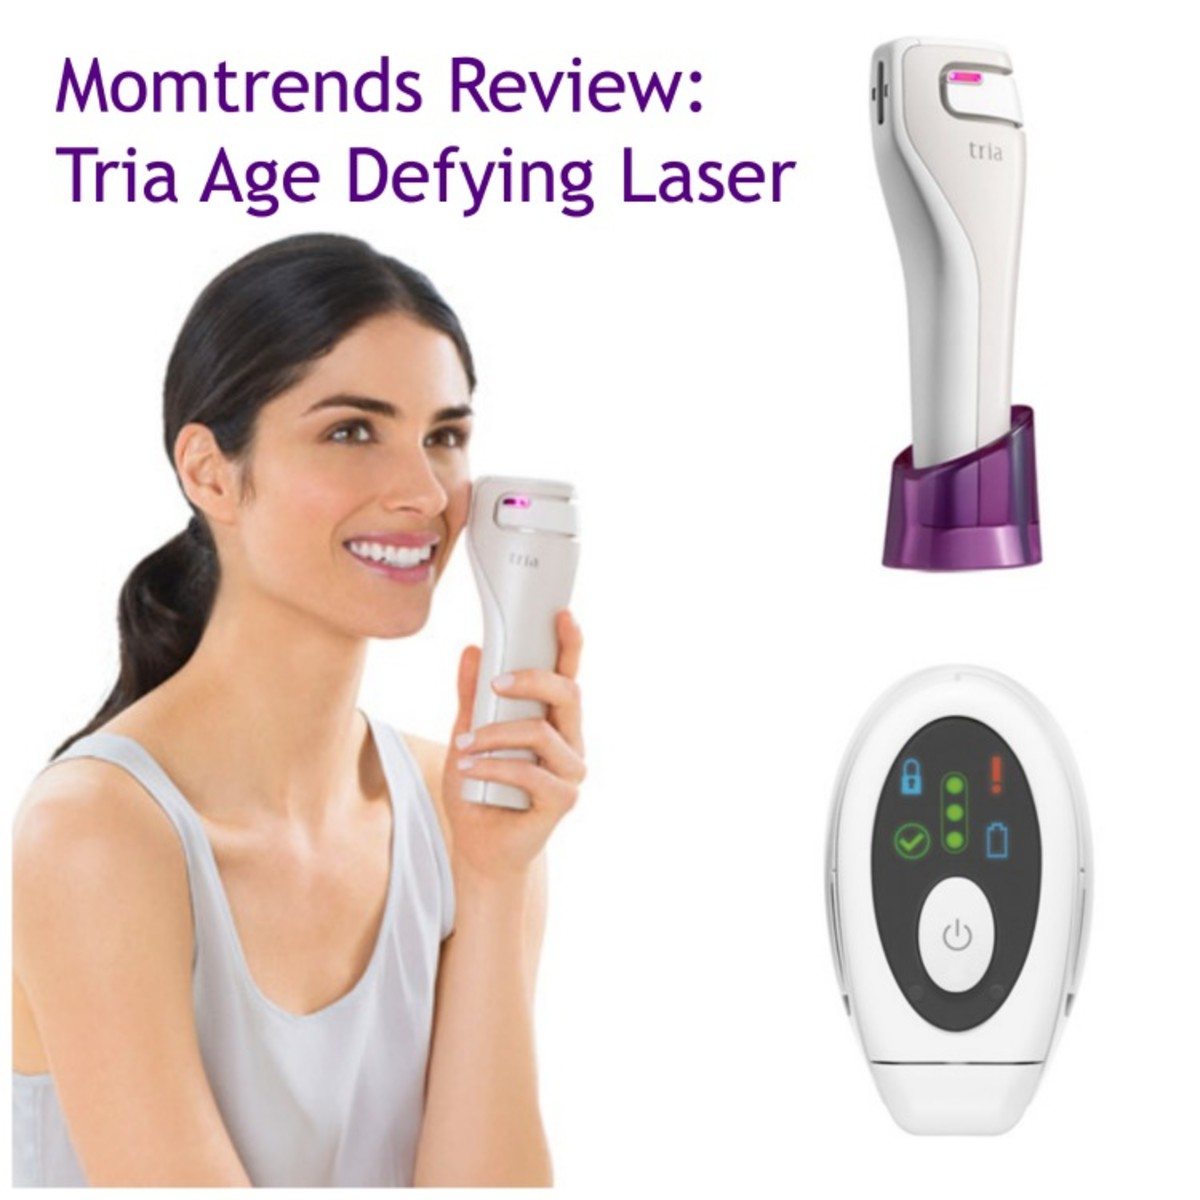 tria age defying laser review.jpg